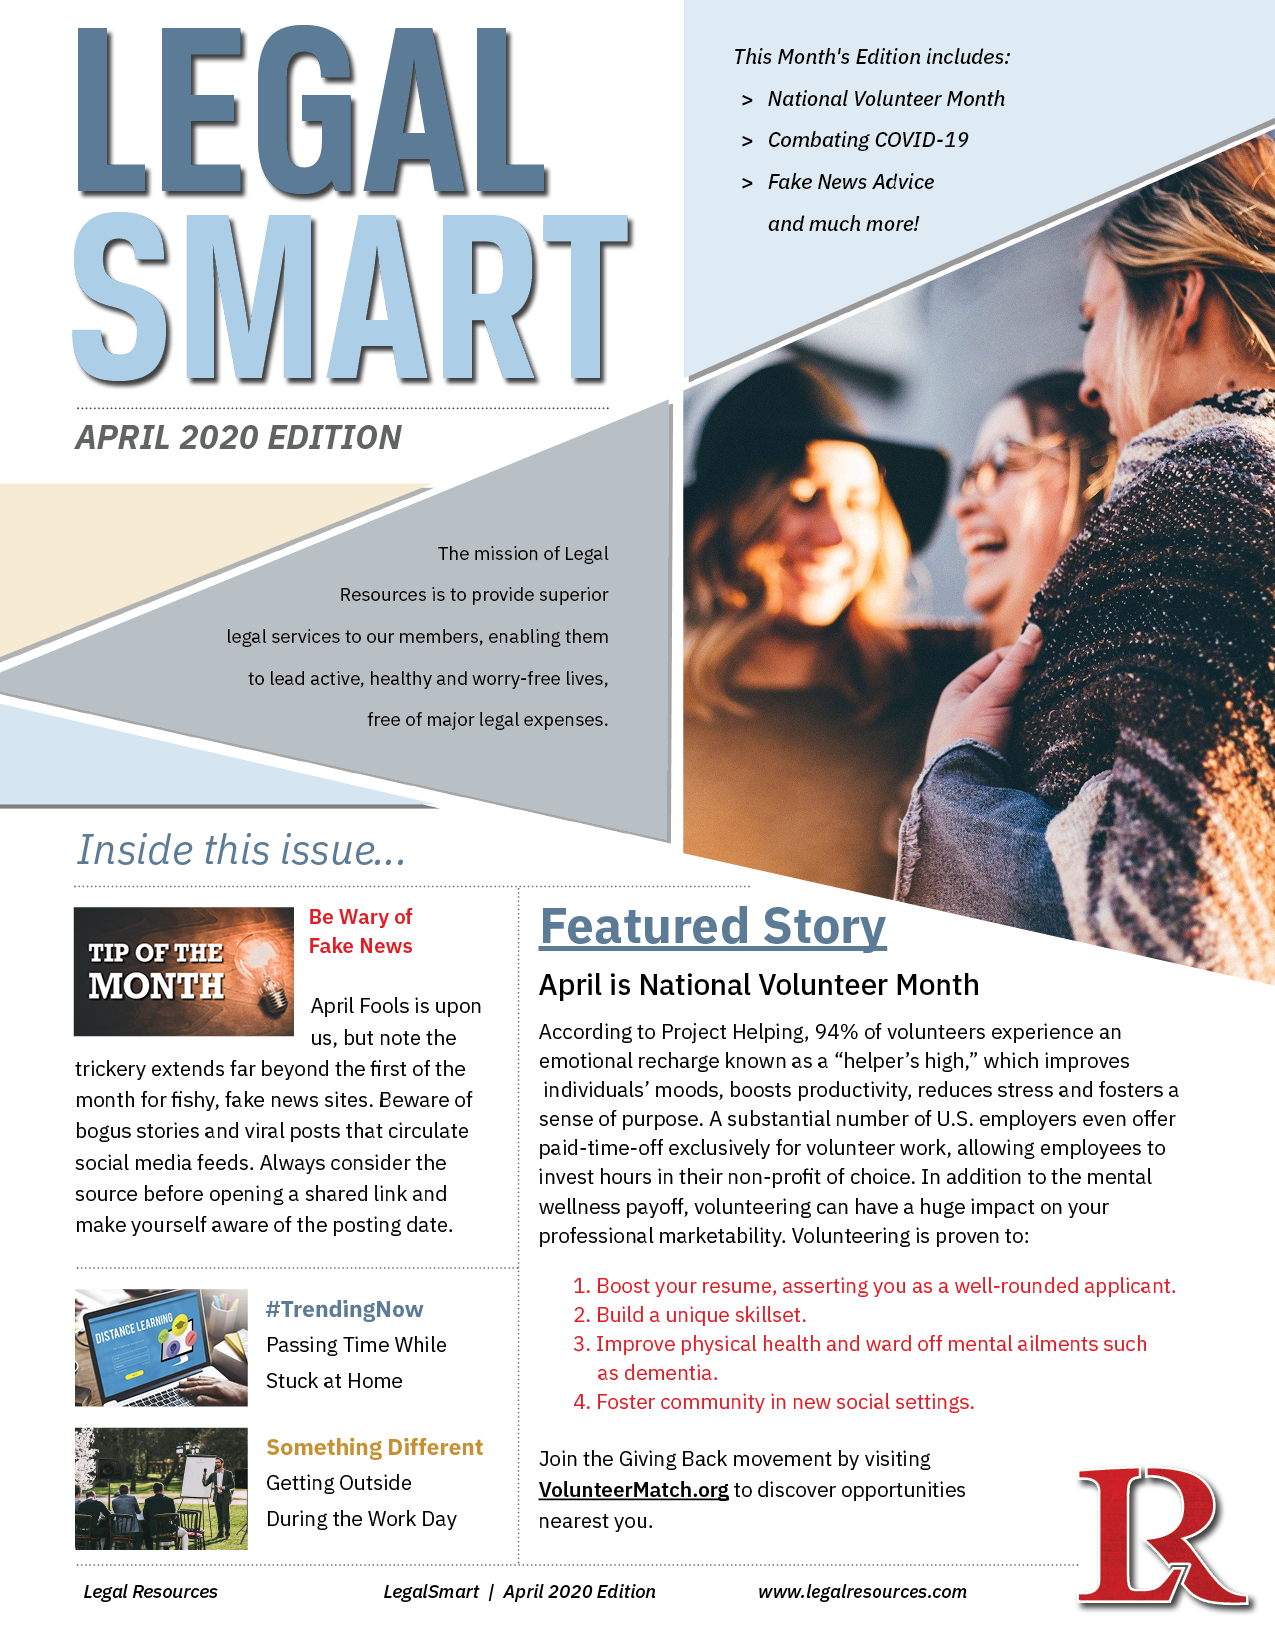 LegalSmart April 2020